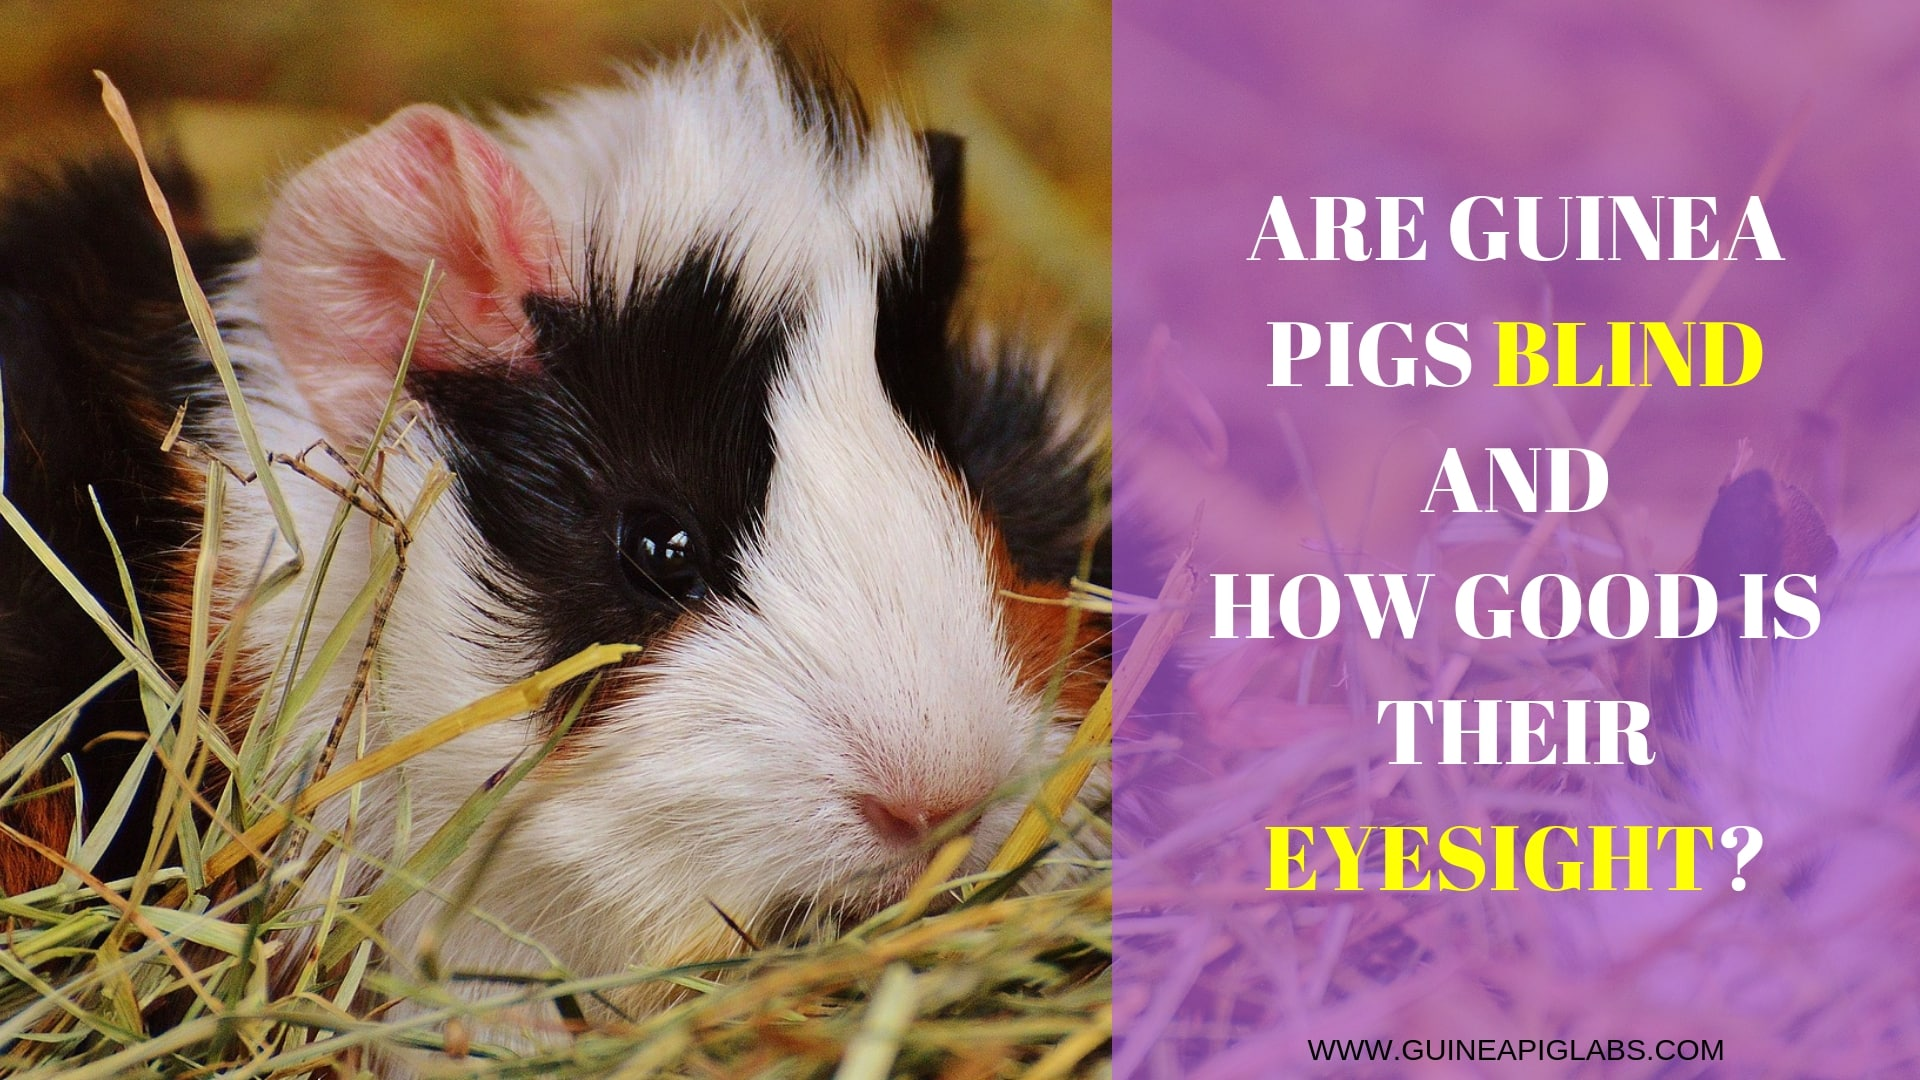 Are Guinea Pigs Blind and How Good Is Their Eyesight